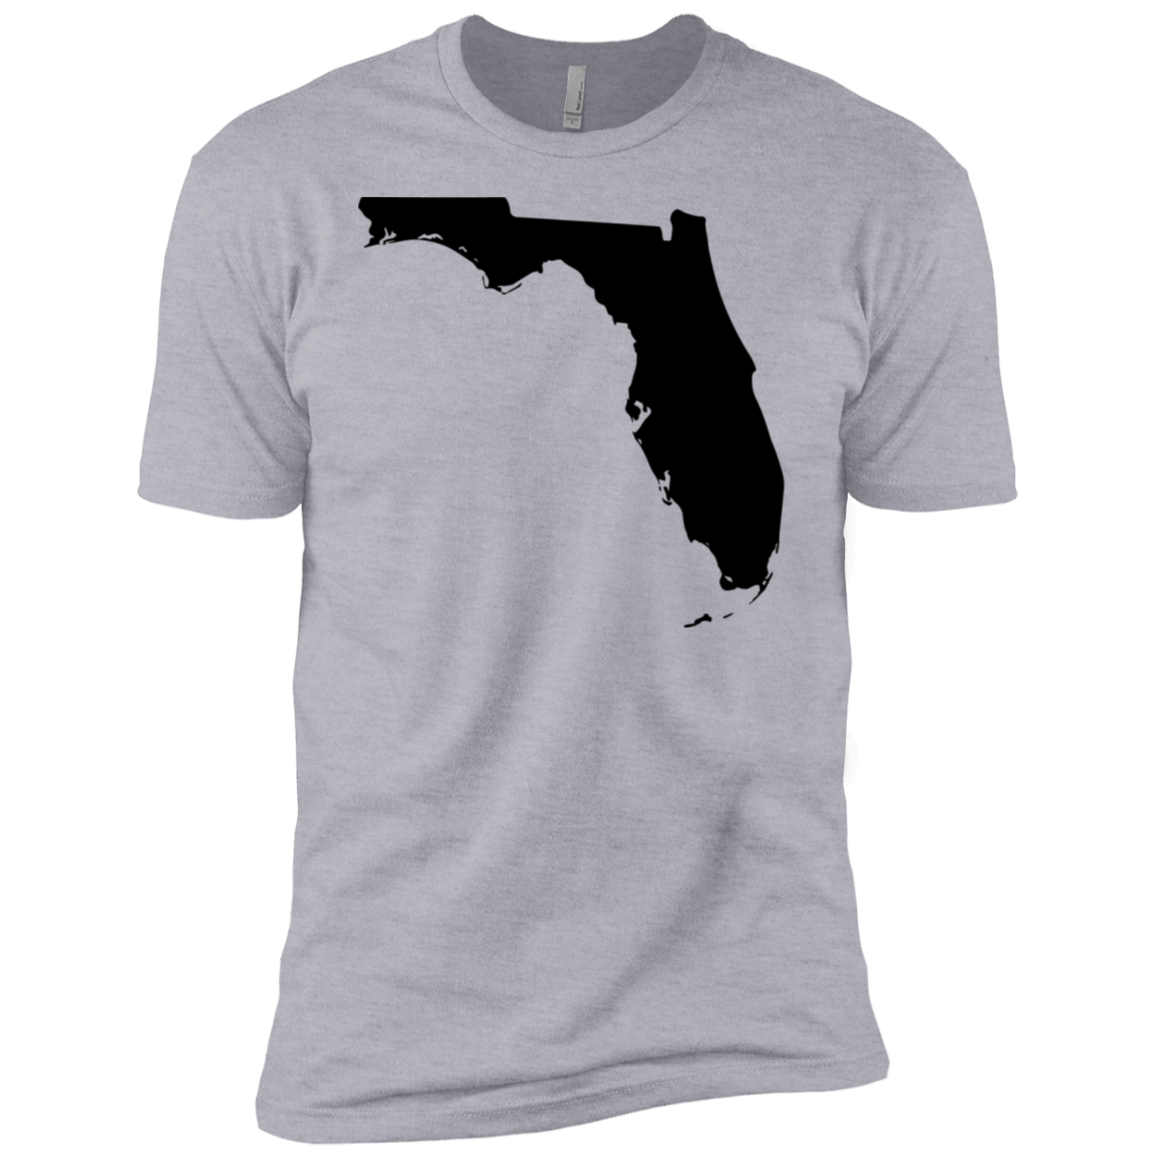 Florida Black Men's Classic Tee